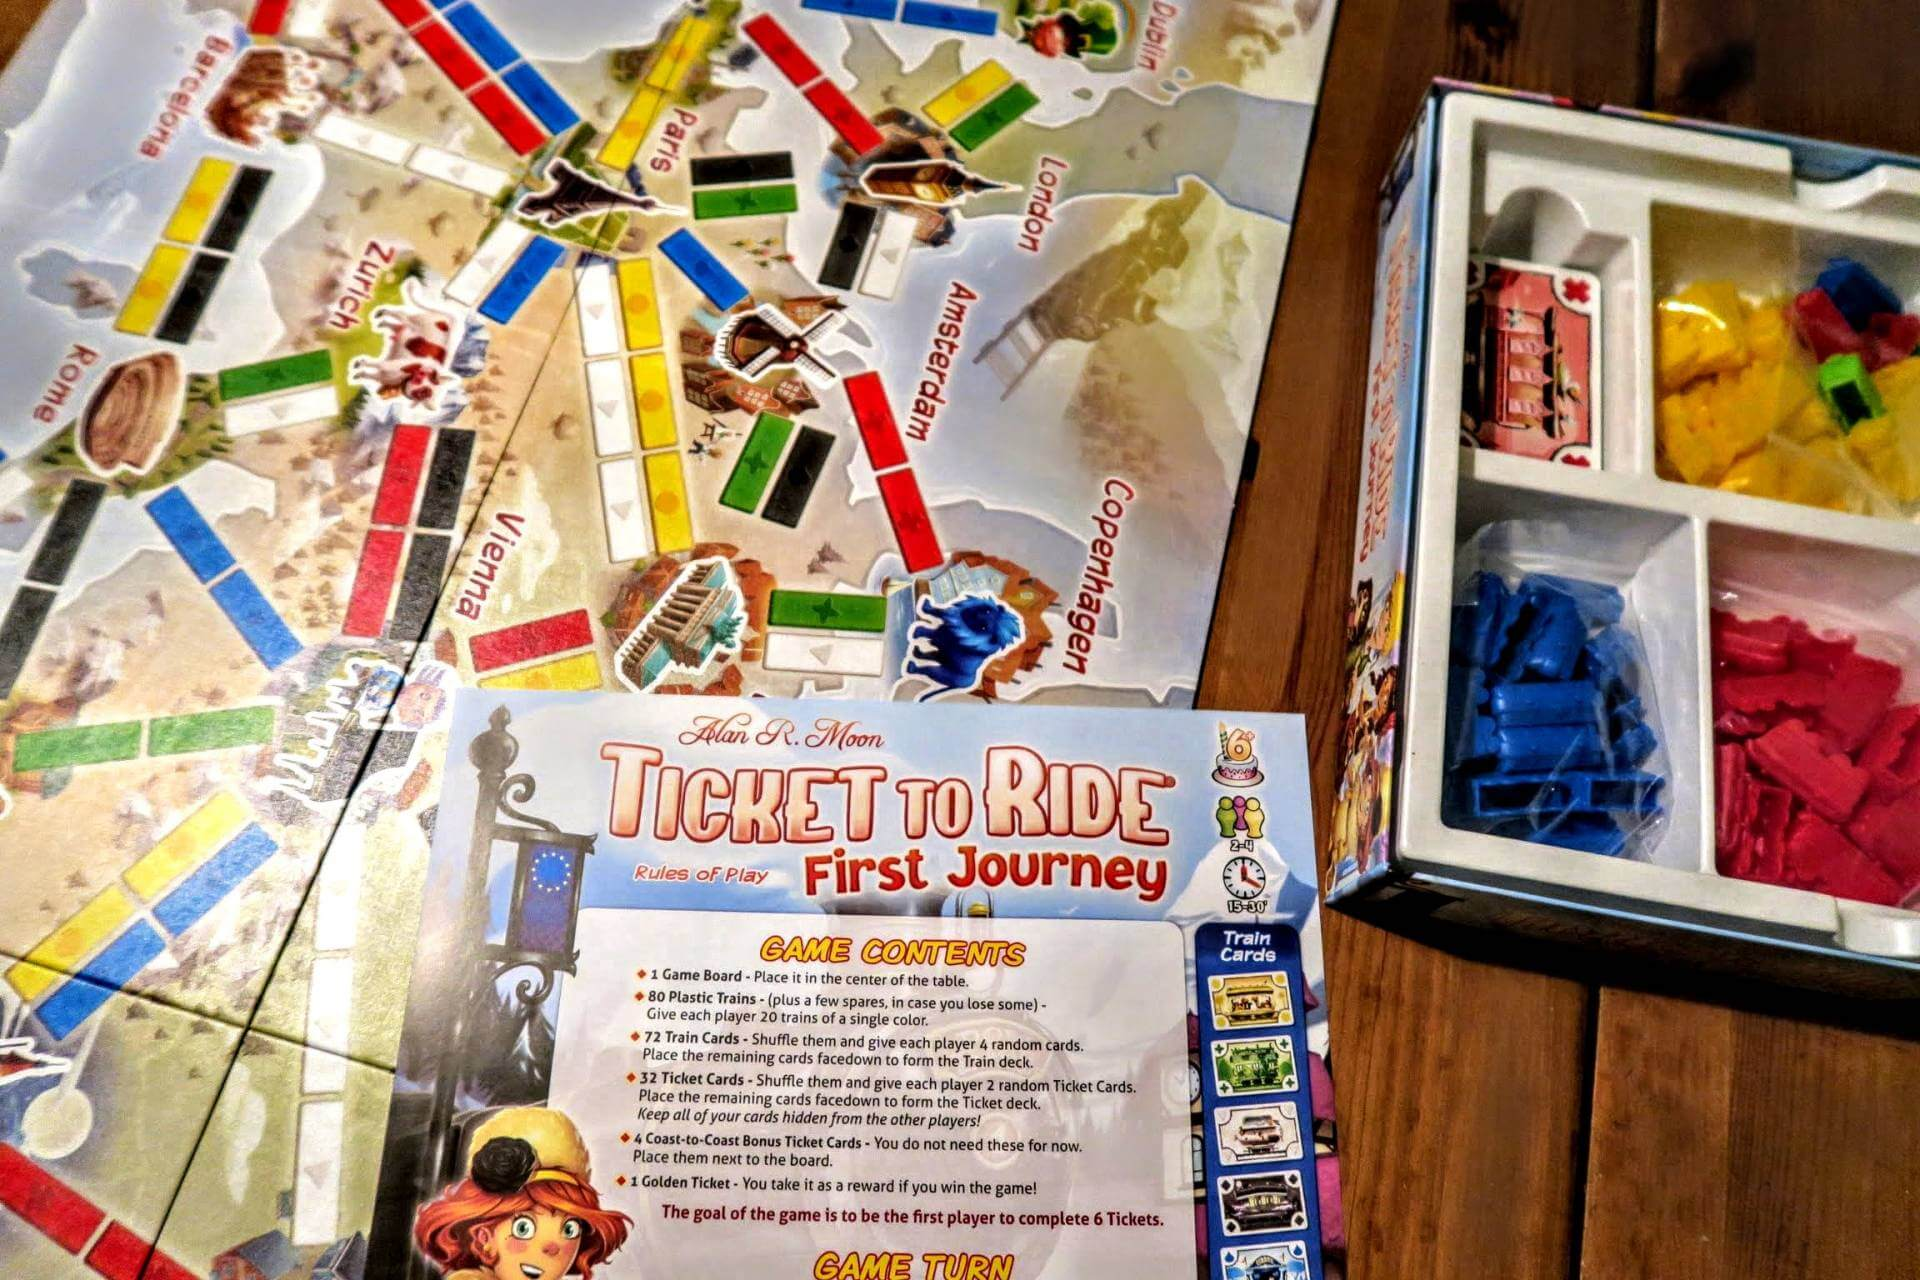 ticket-to-ride-board-game-review-midiwifeandlife.com